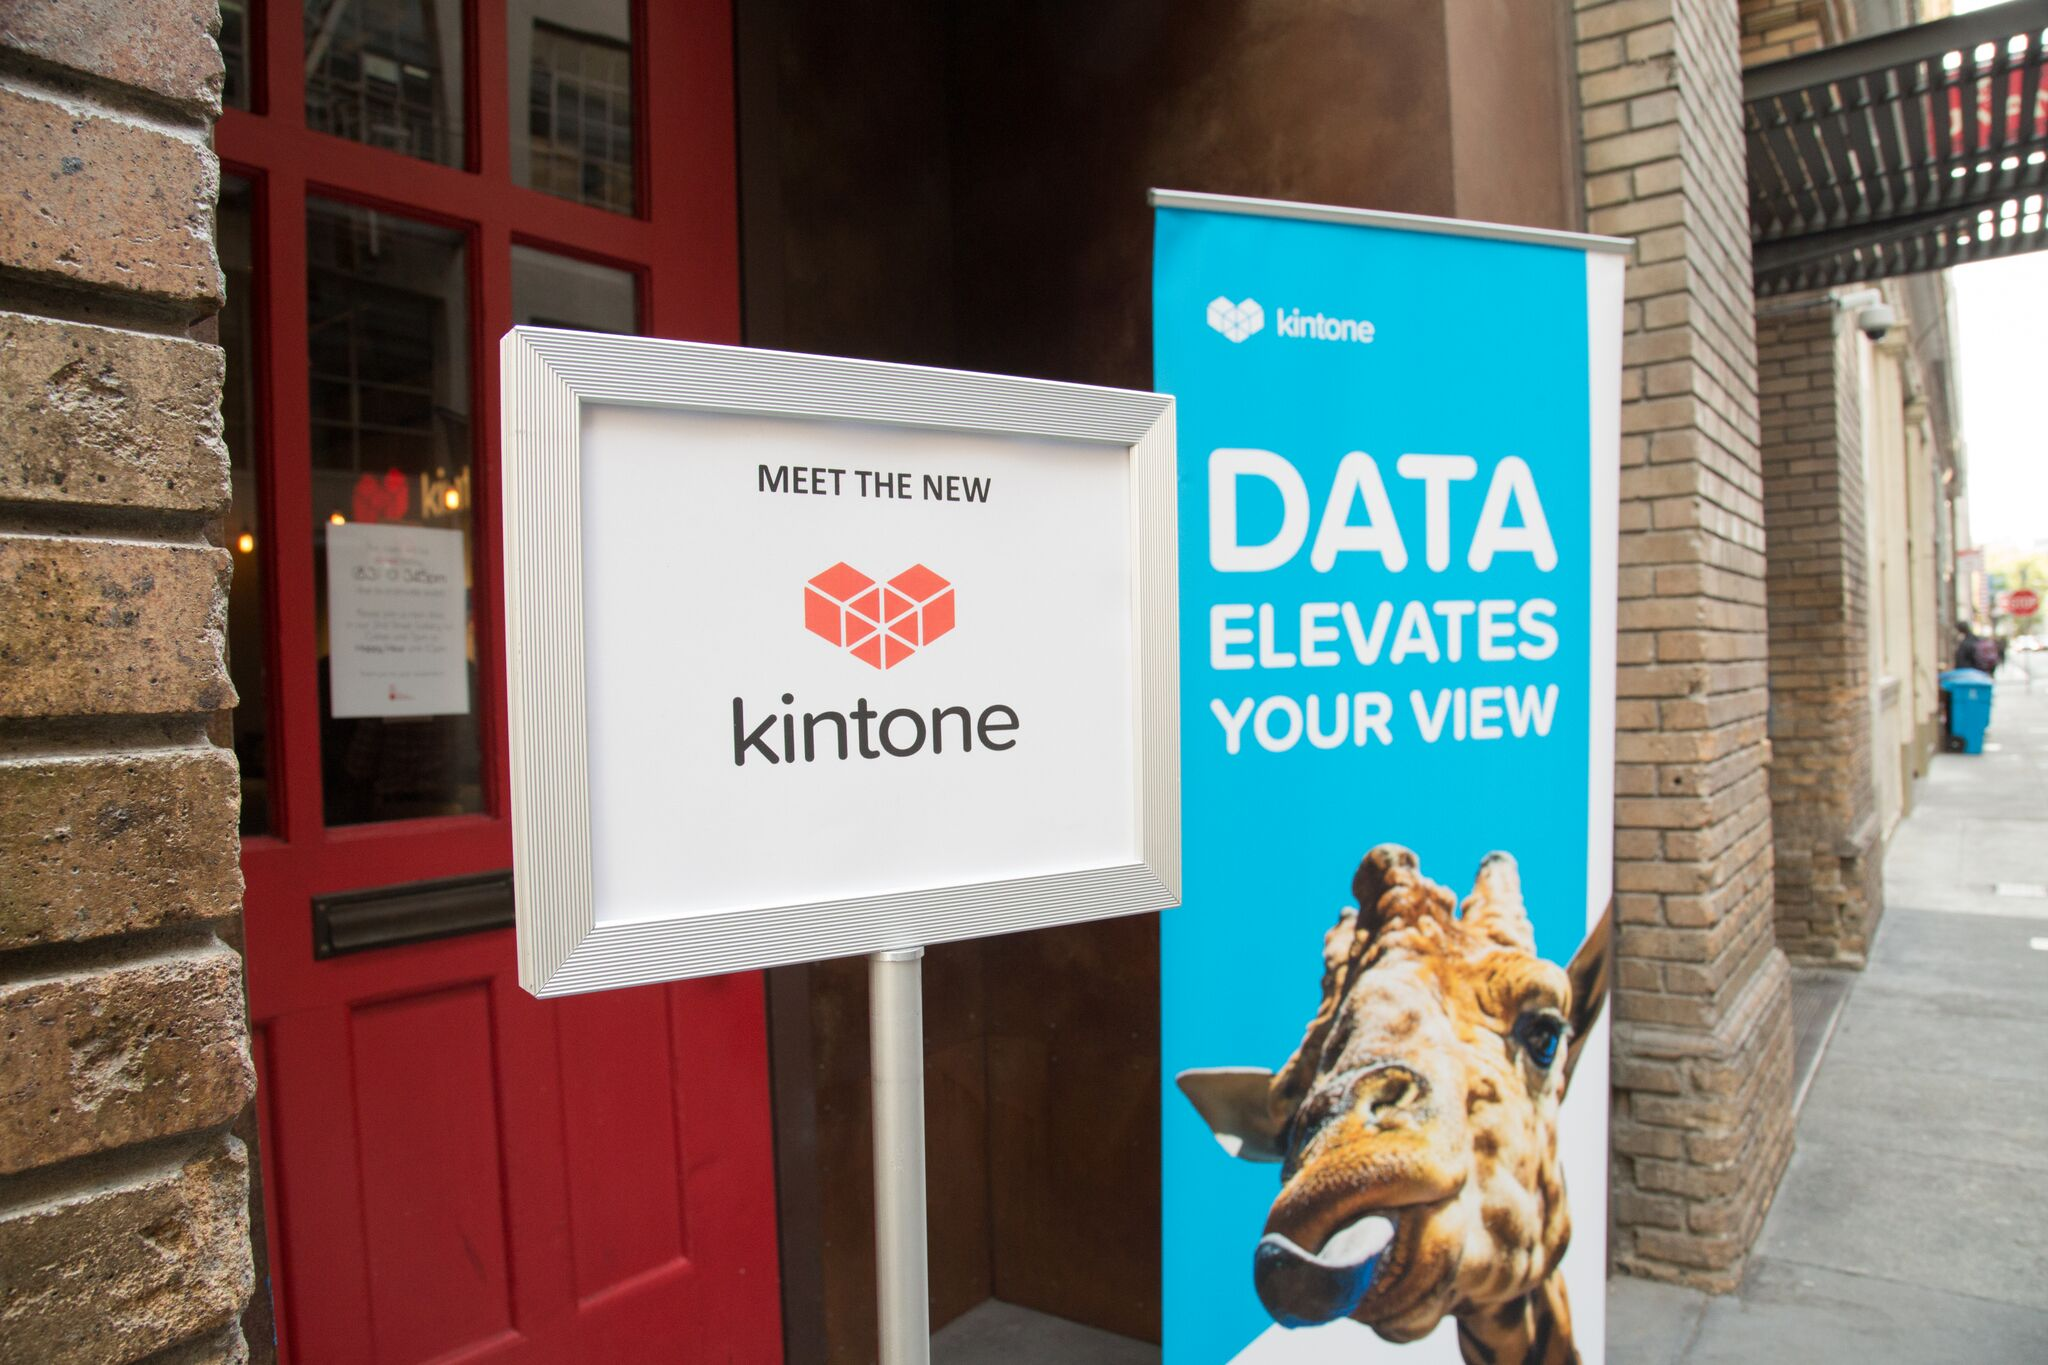 KINTONE_LAUNCH_PARTY_09.jpg